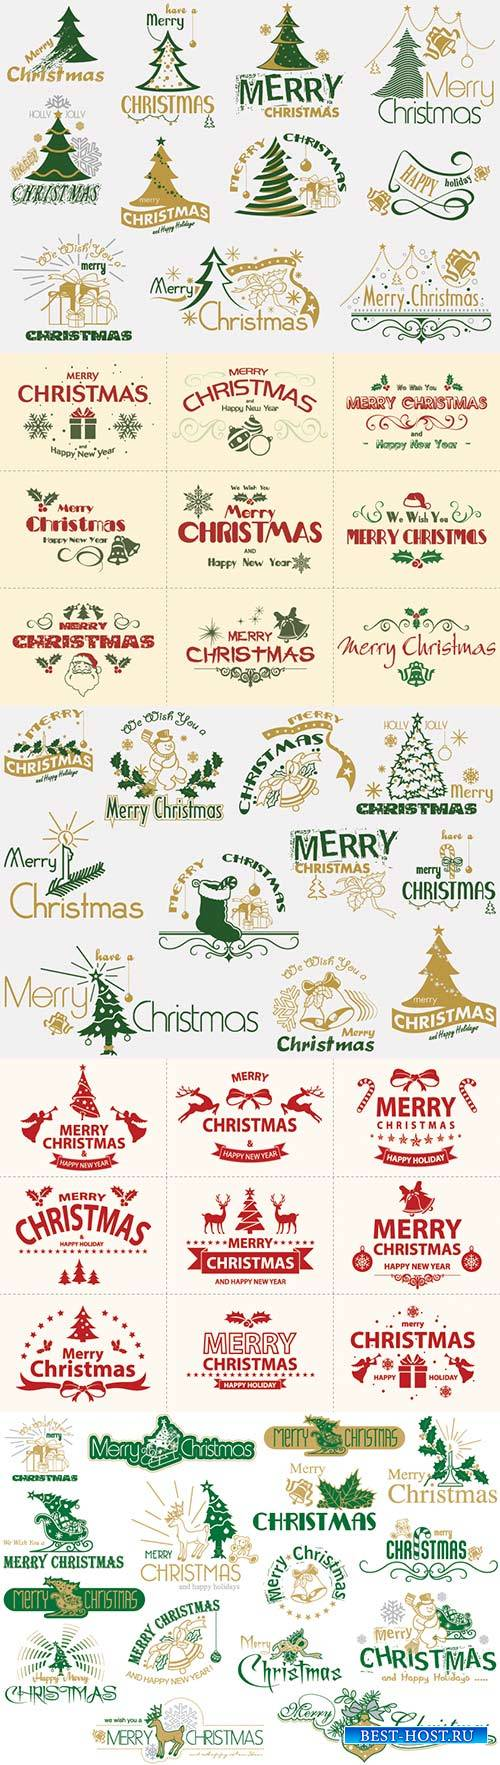 Merry Christmas typography set, logo and emblems